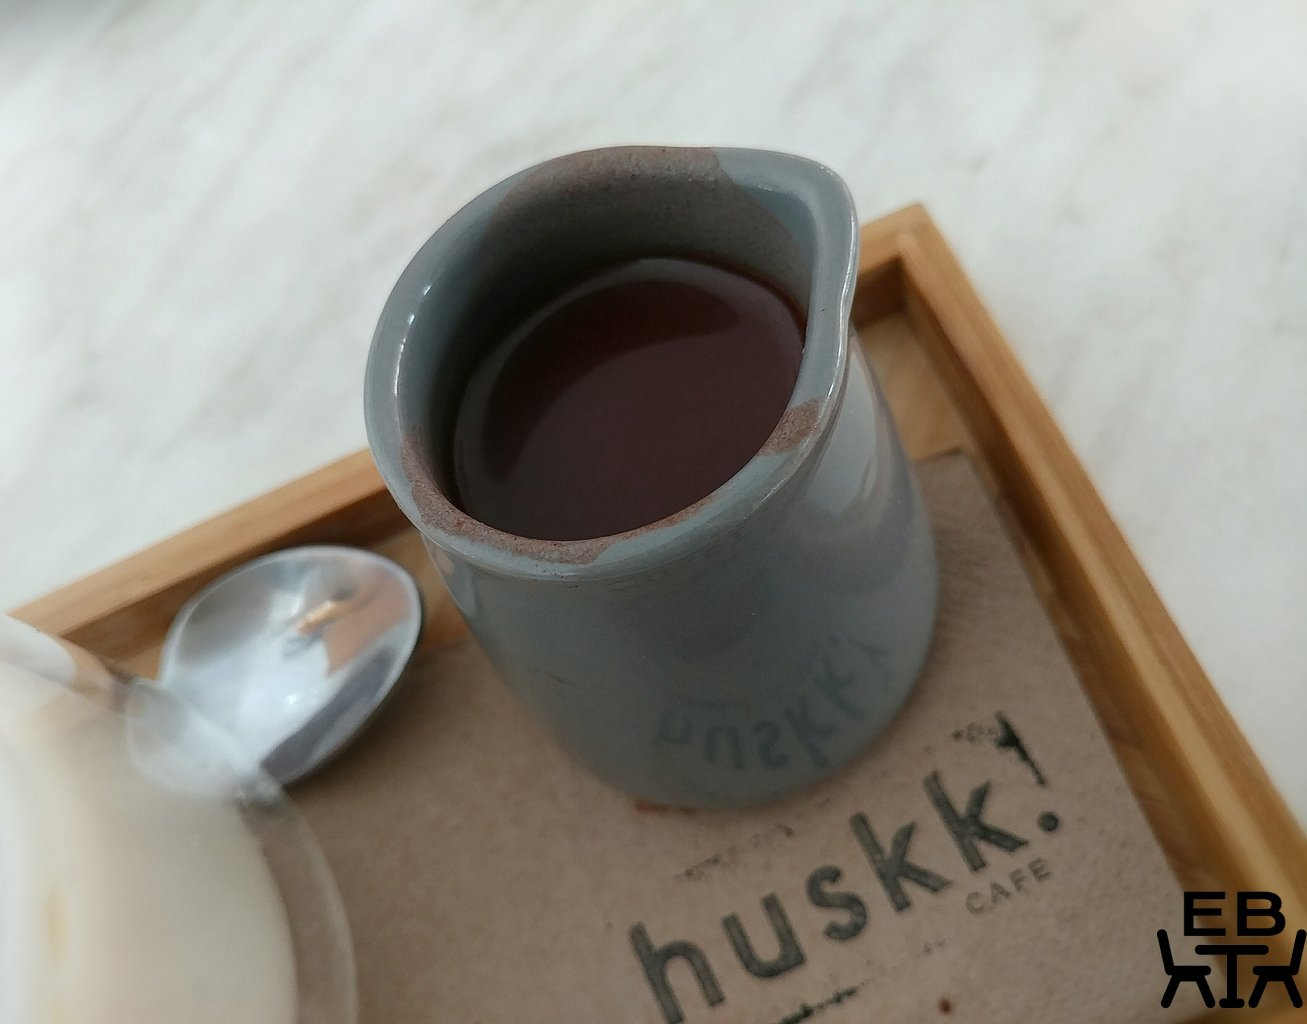 huskk cafe iced chocolate